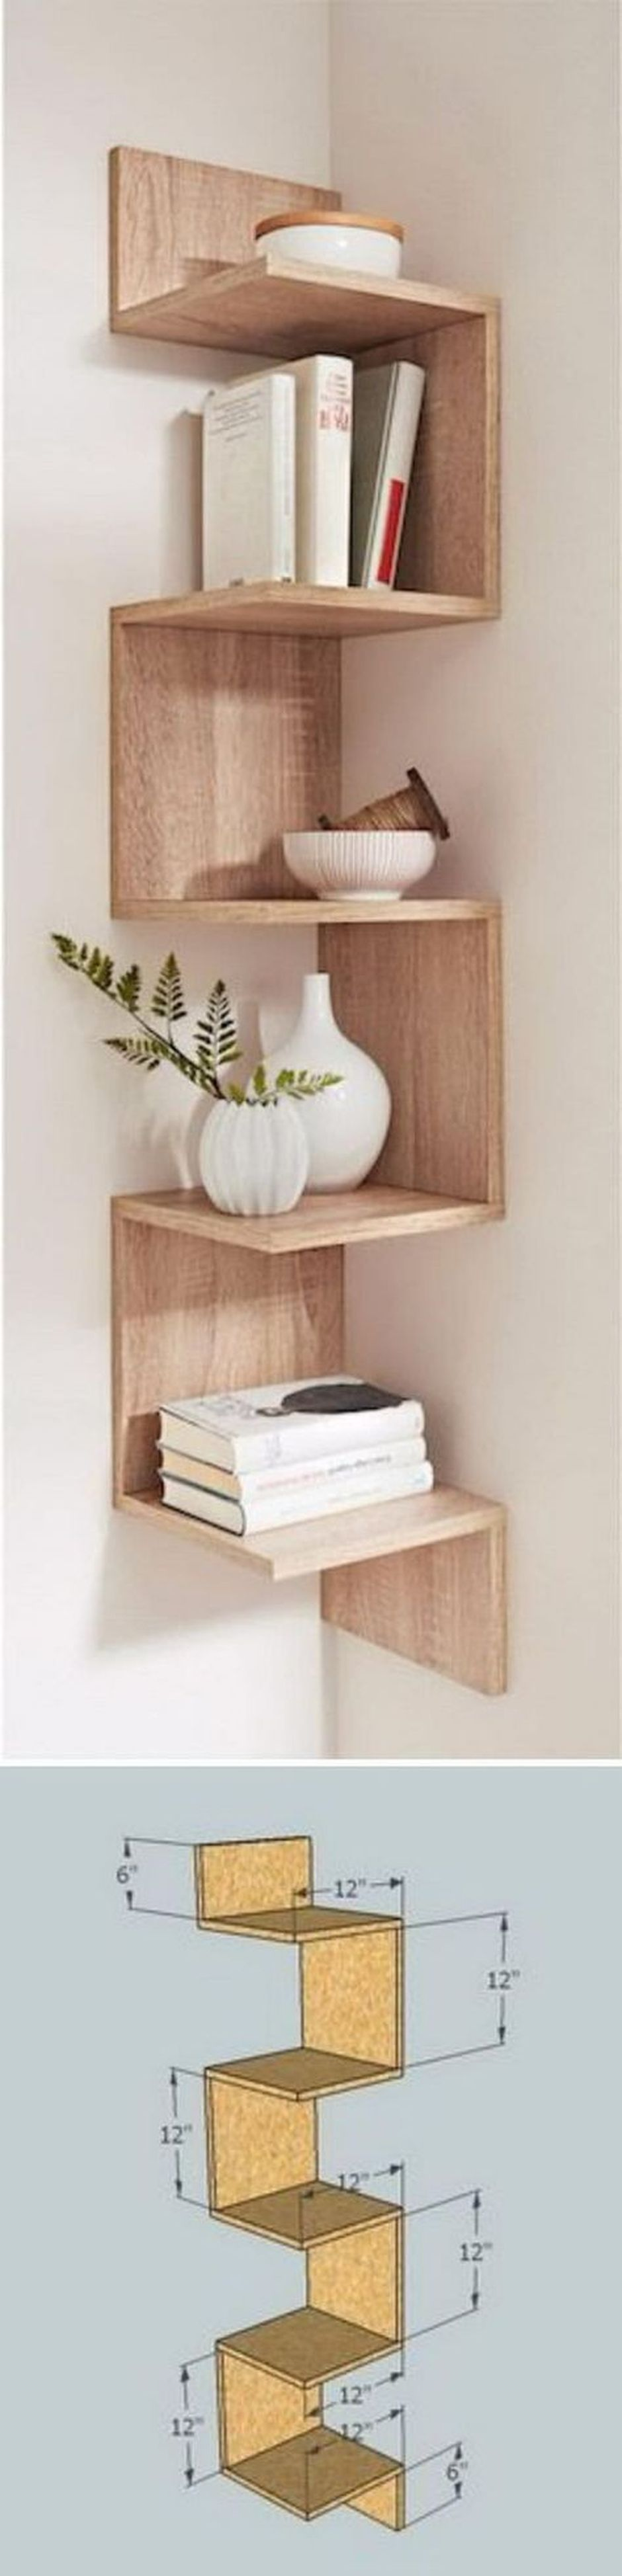 Shelf Design Ideas 50 Attractive Corner Wall Shelves Design Ideas For Living Room